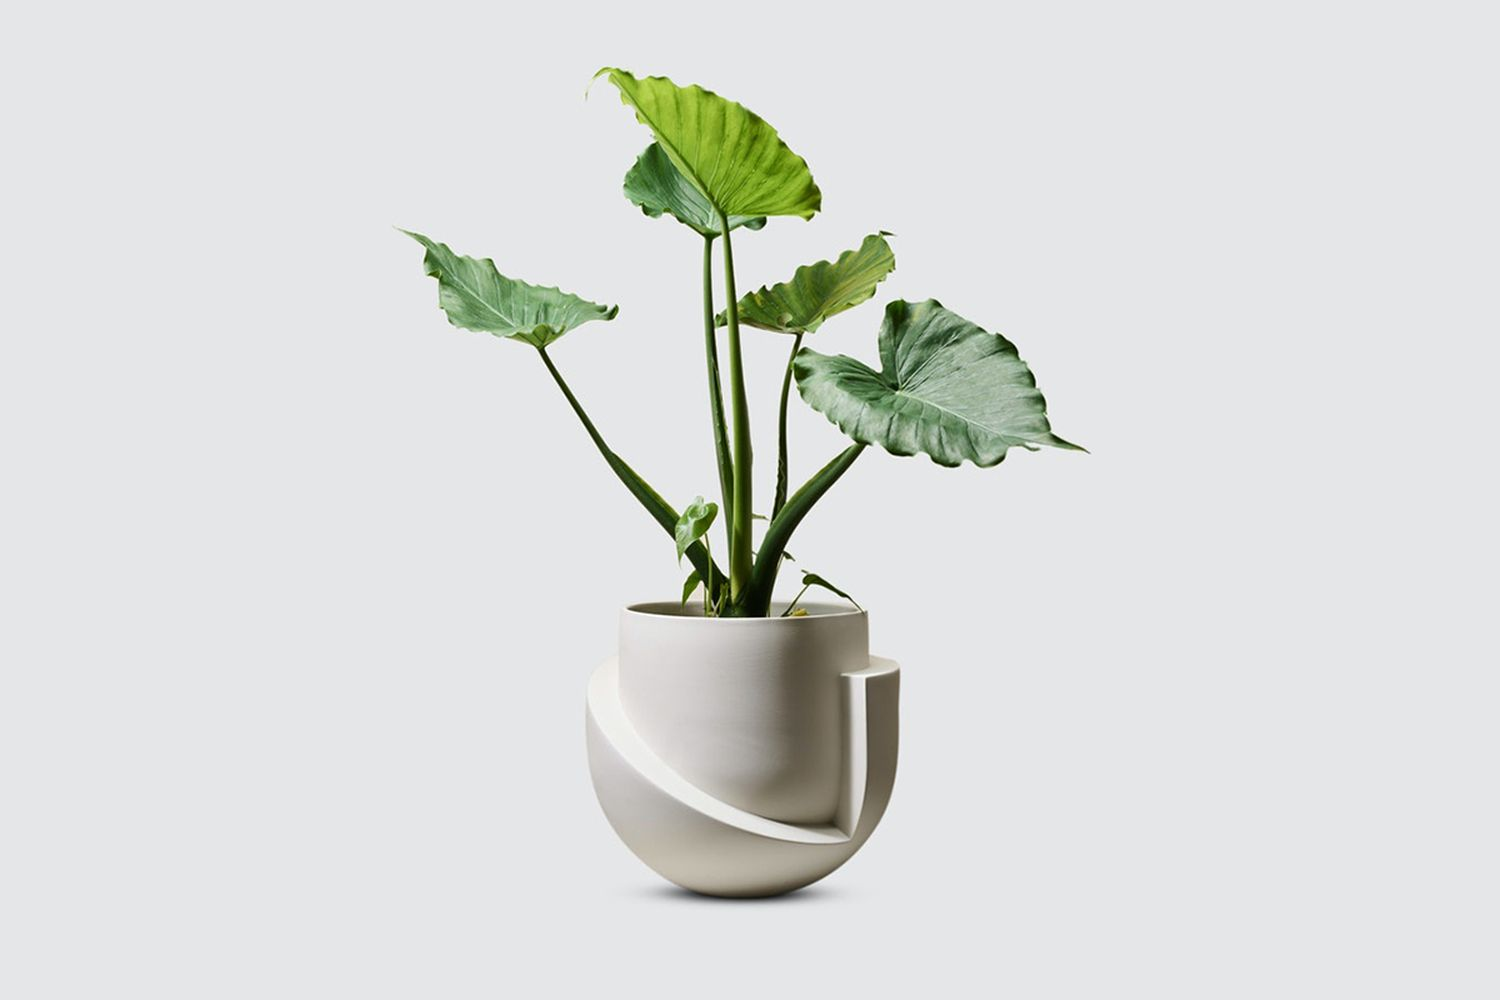 Vayu Ceramic Planter, No Drainage